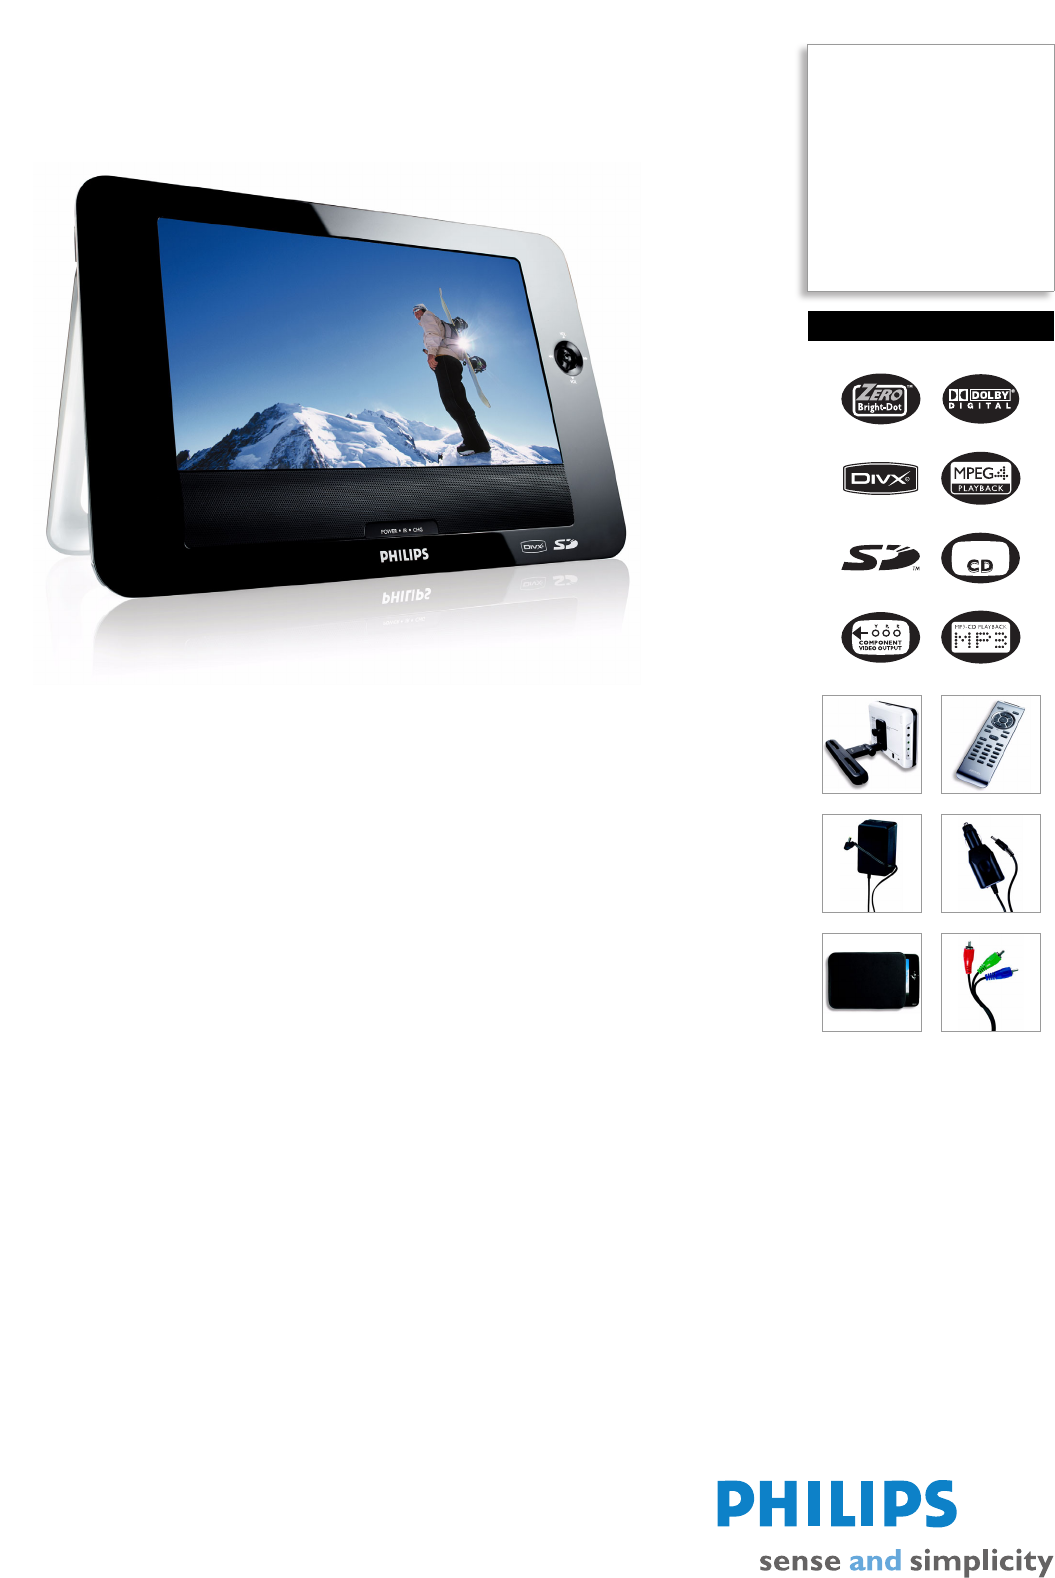 Philips portable dvd player remote control cr2025 with instruction.